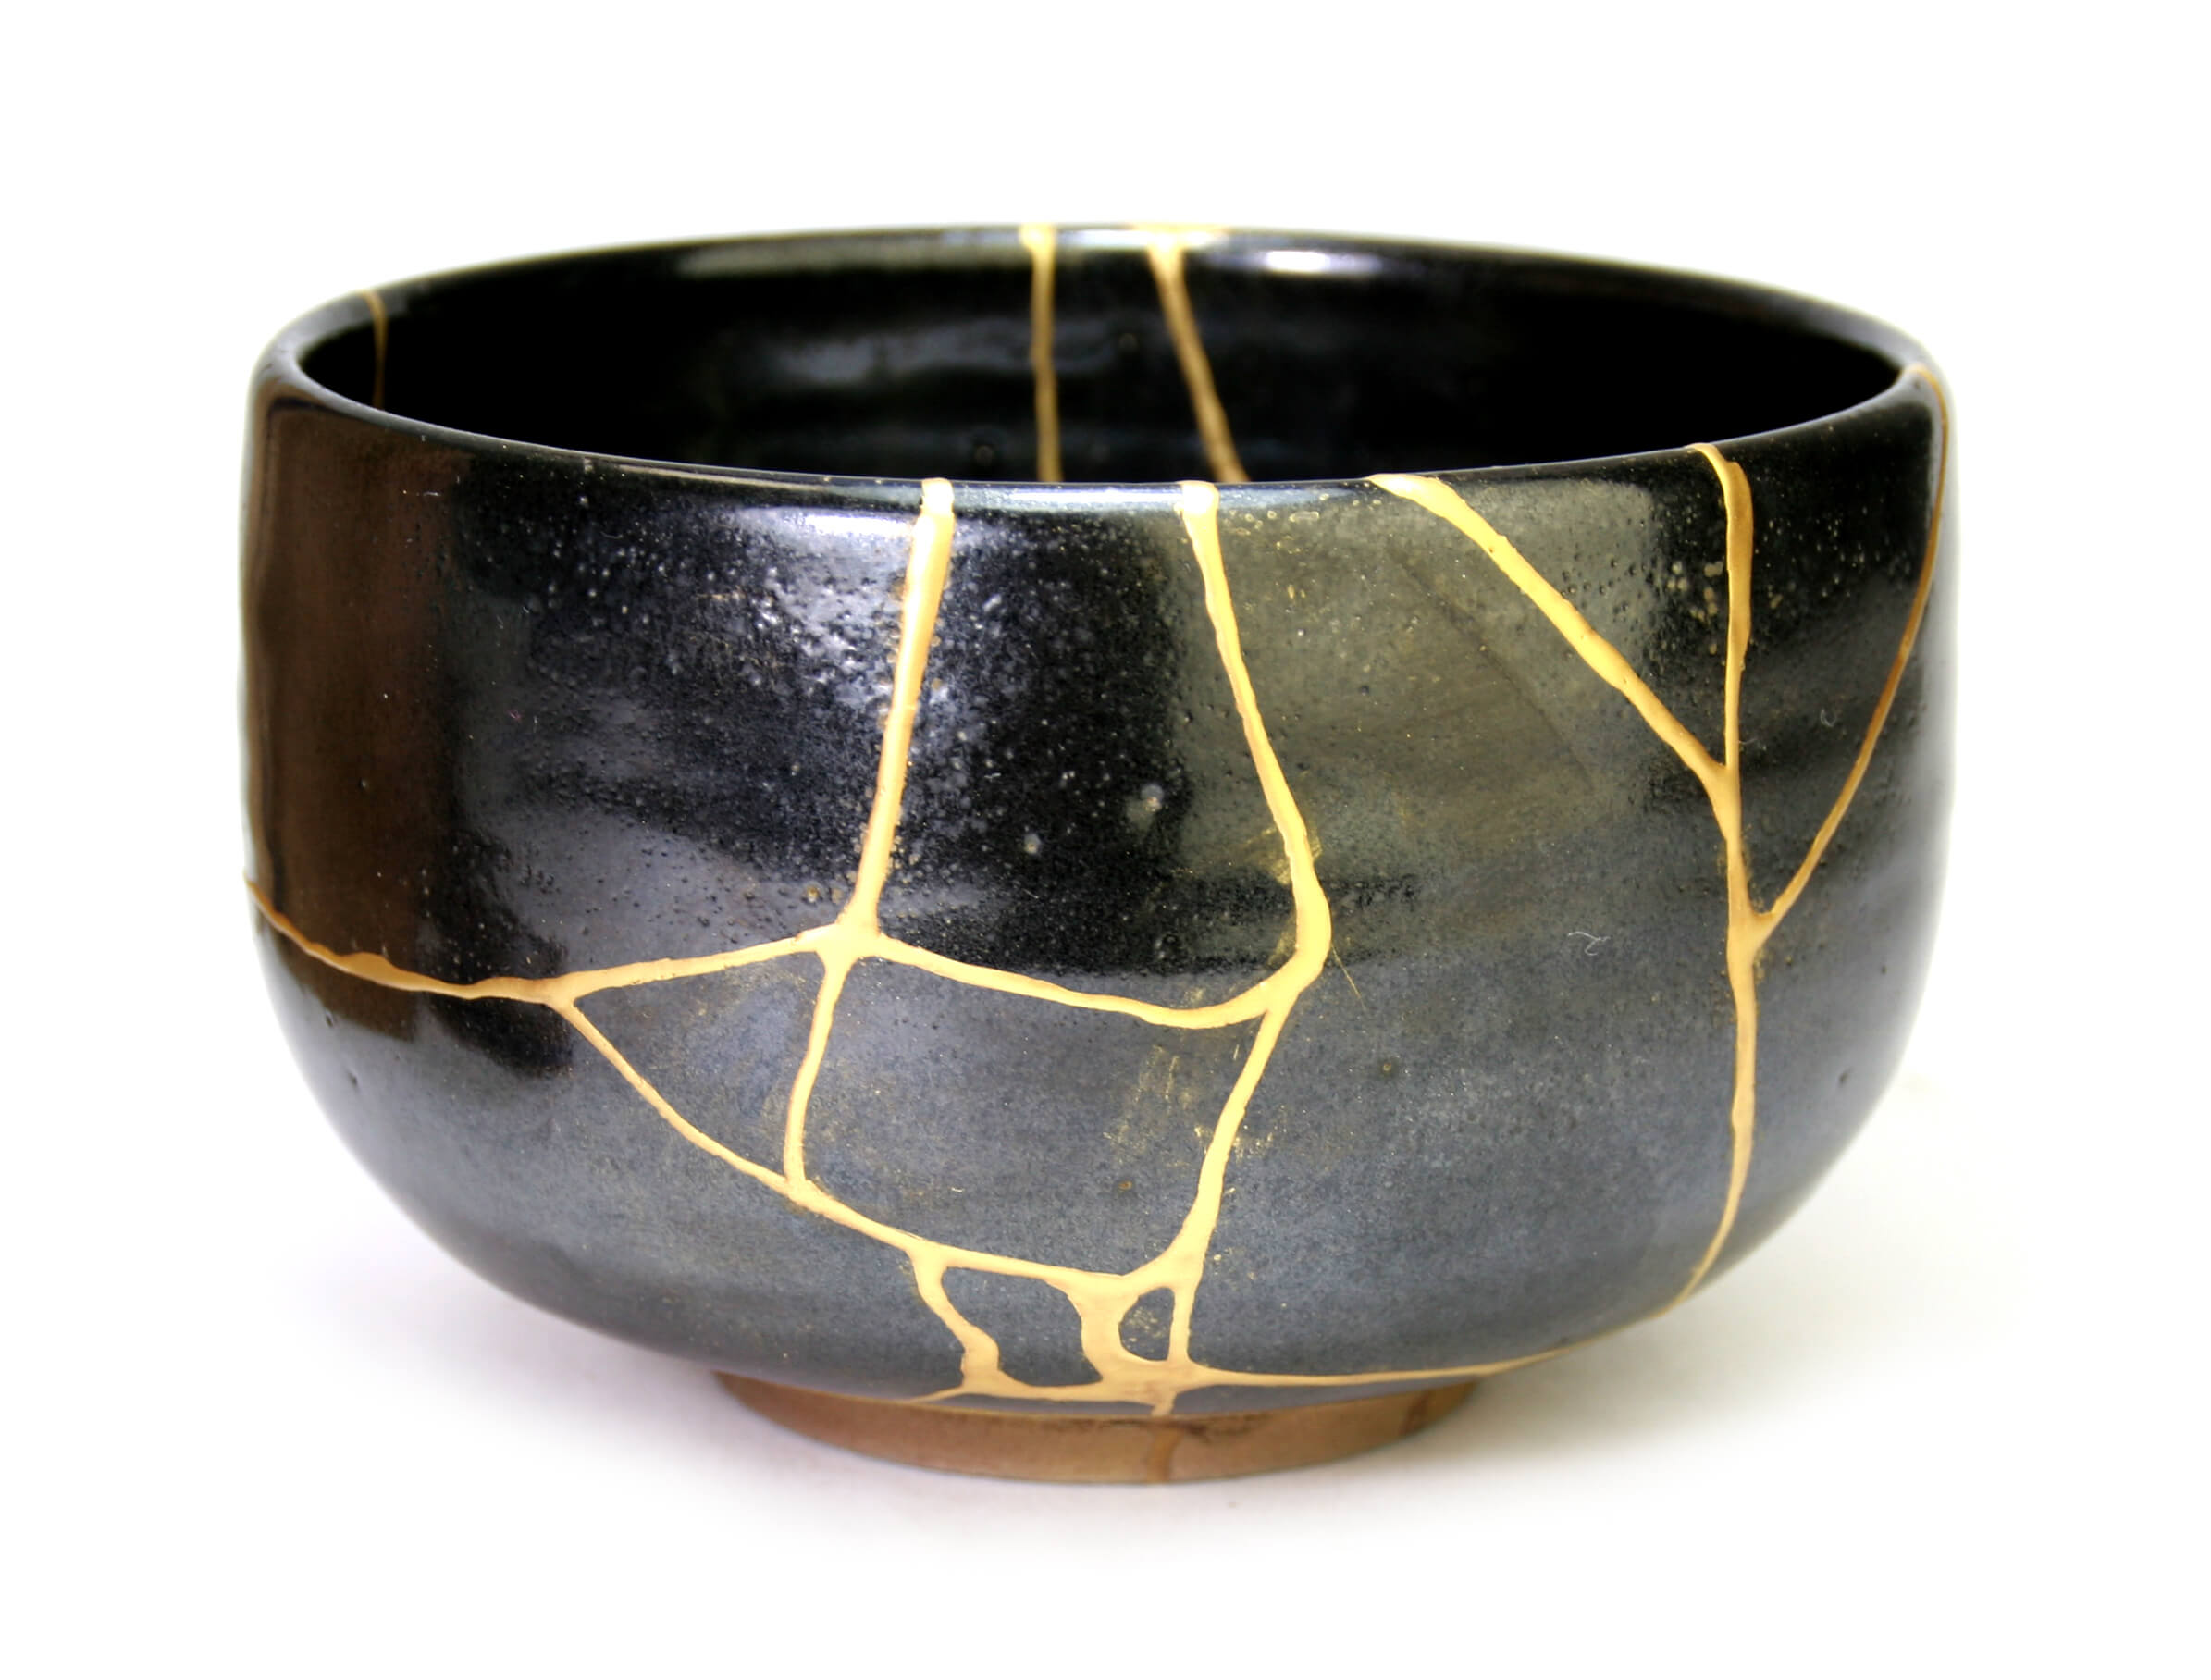 Kintsugi Kintsugi The Art Of Resilience Turn Your Wounds Into Gold